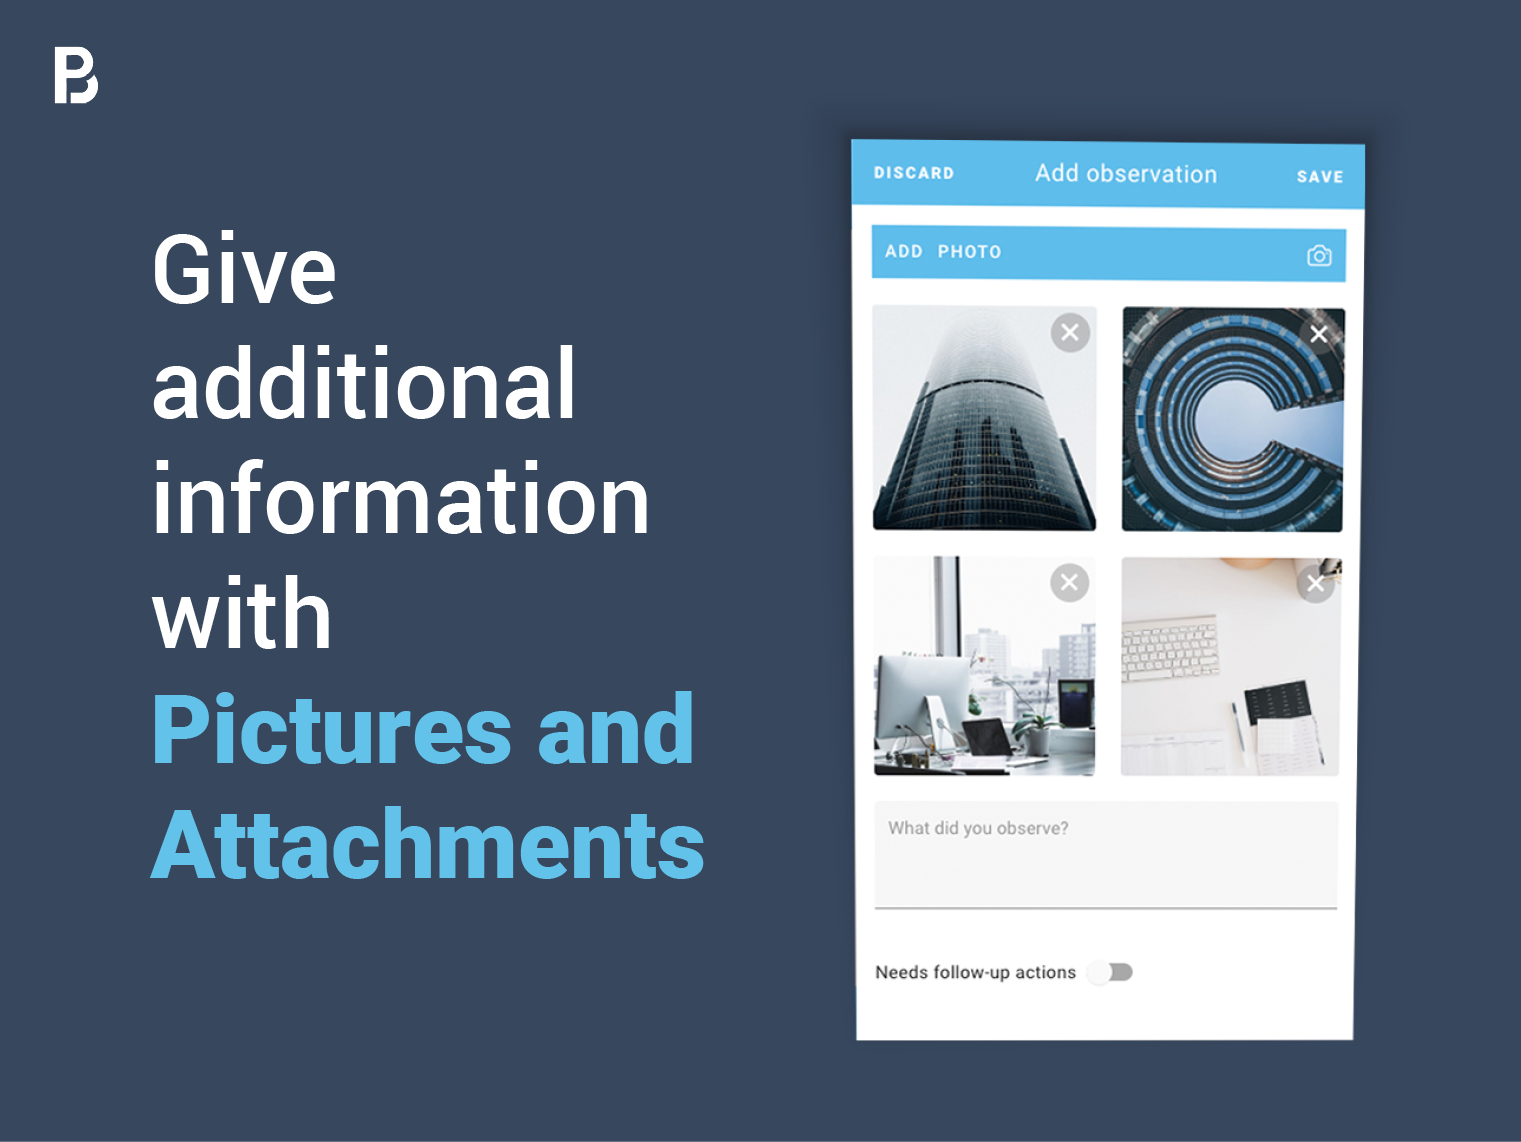 A picture is worth a thousand words. Thus you can give more information by adding pictures and attachments to the observations you make with just a couple of clicks.